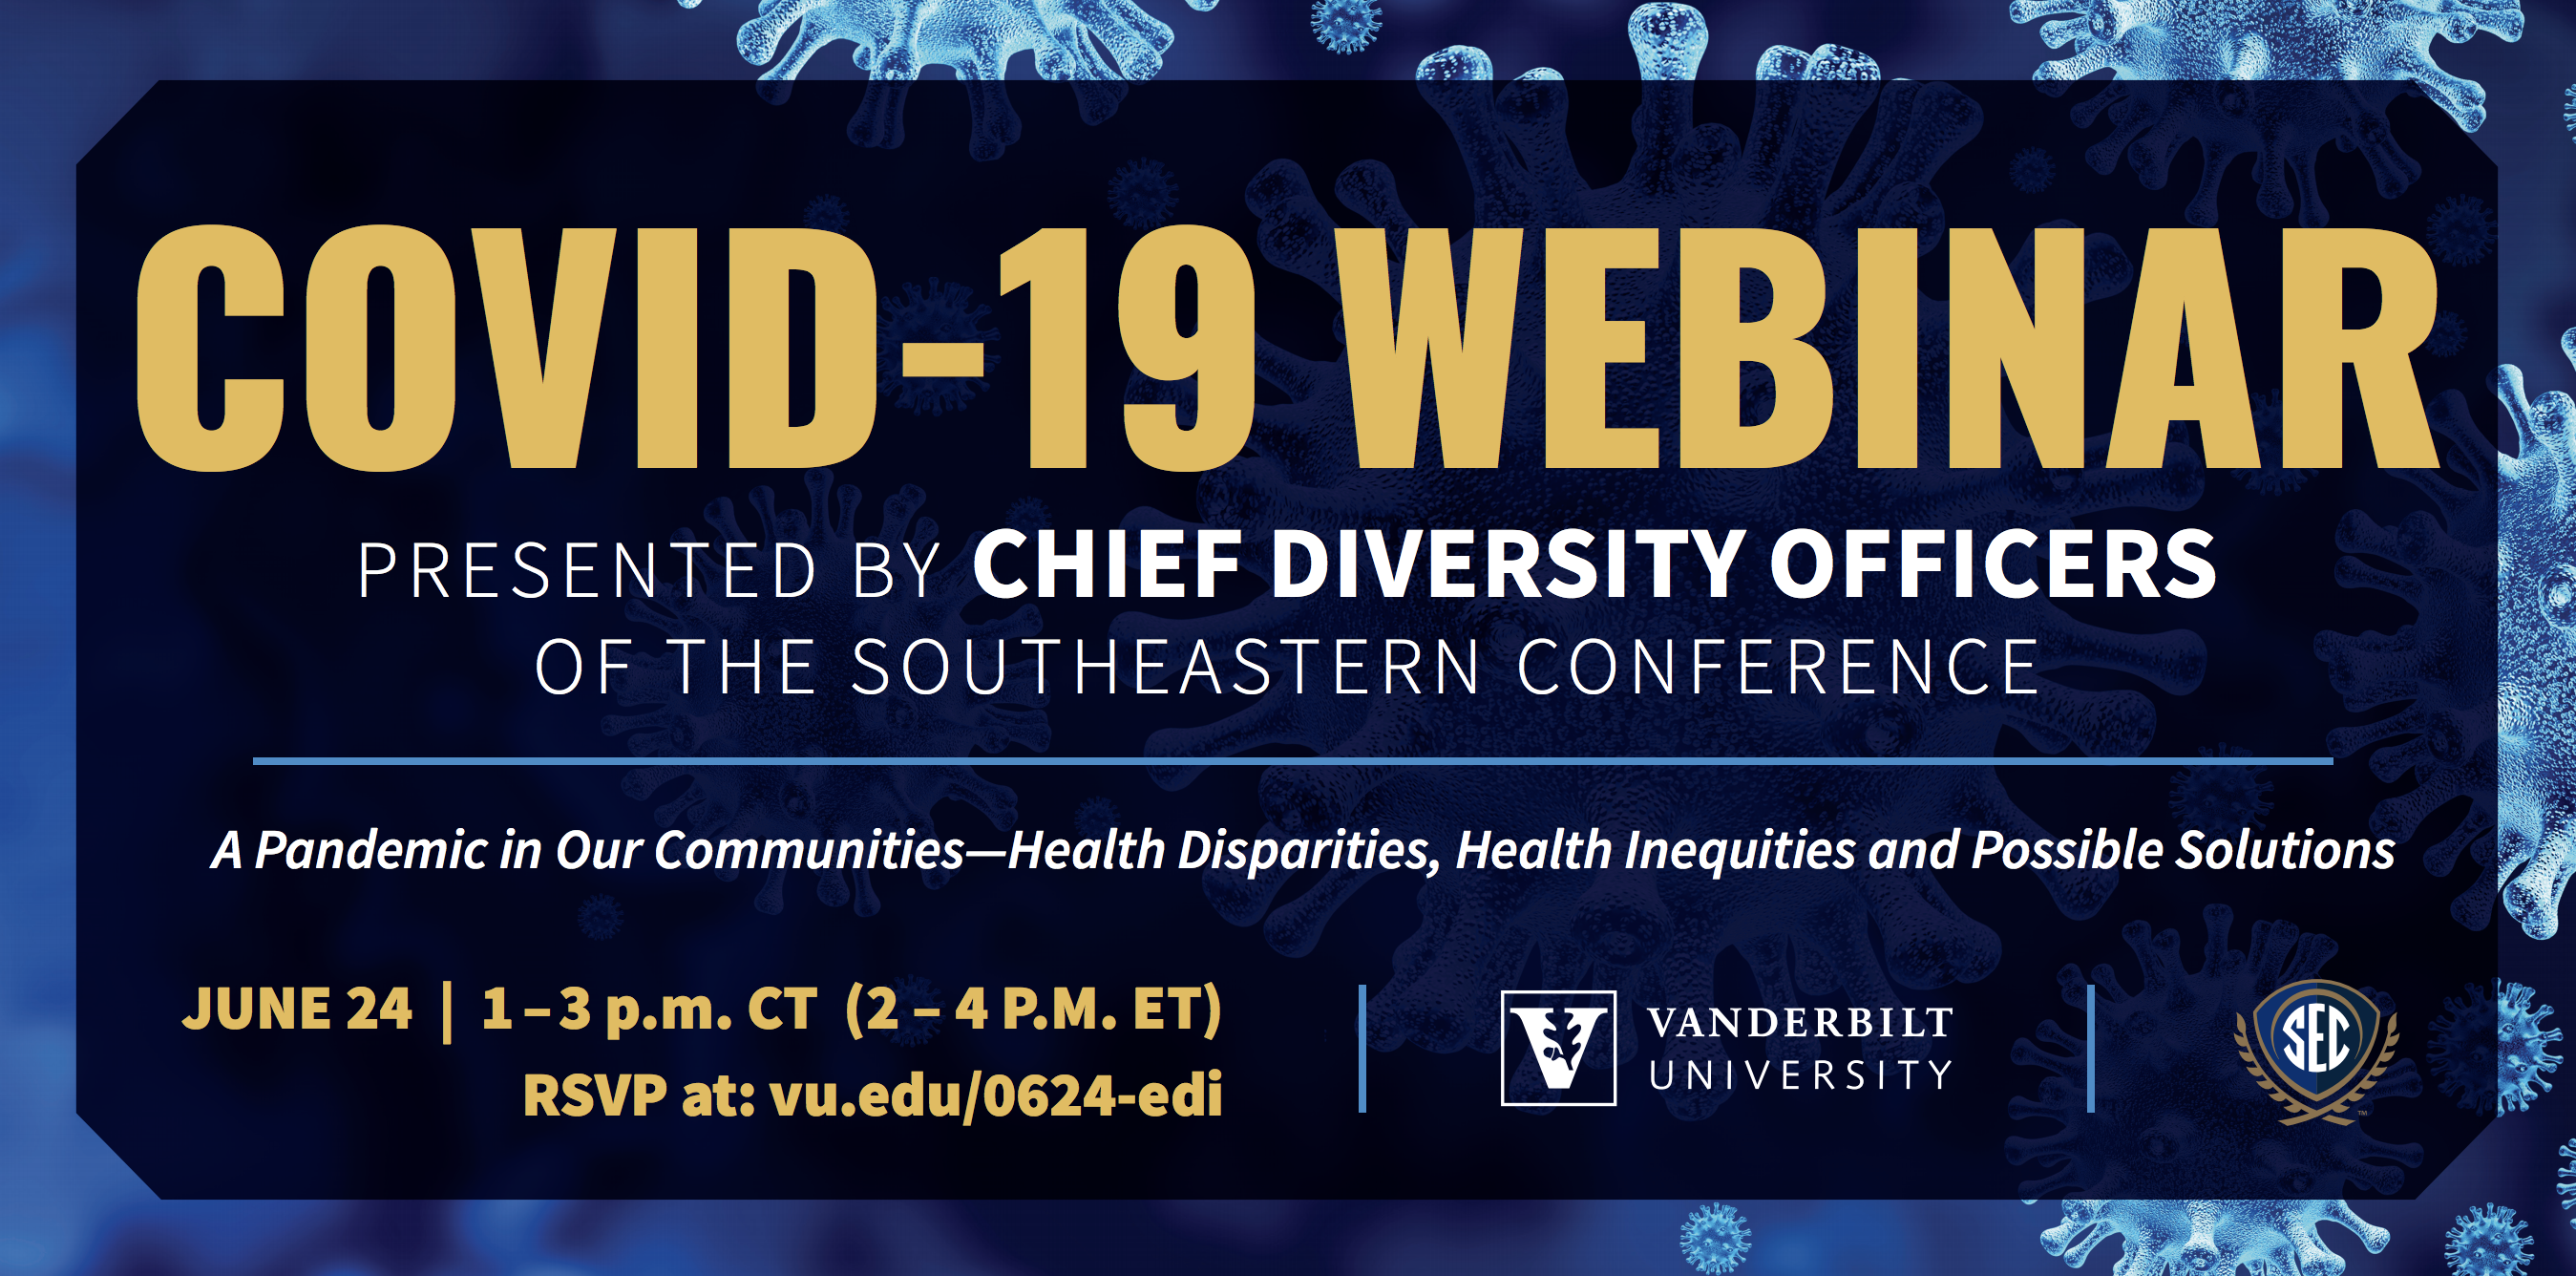 COVID-19 Webinar presented by Chief Diversity Officers of the Southeastern Conference. A Pandemic in Our Communities – Health Disparities, Health Inequities and Possible Solutions. June 24 from 1 to 3 p.m. CT (2 to 4 p.m. ET)